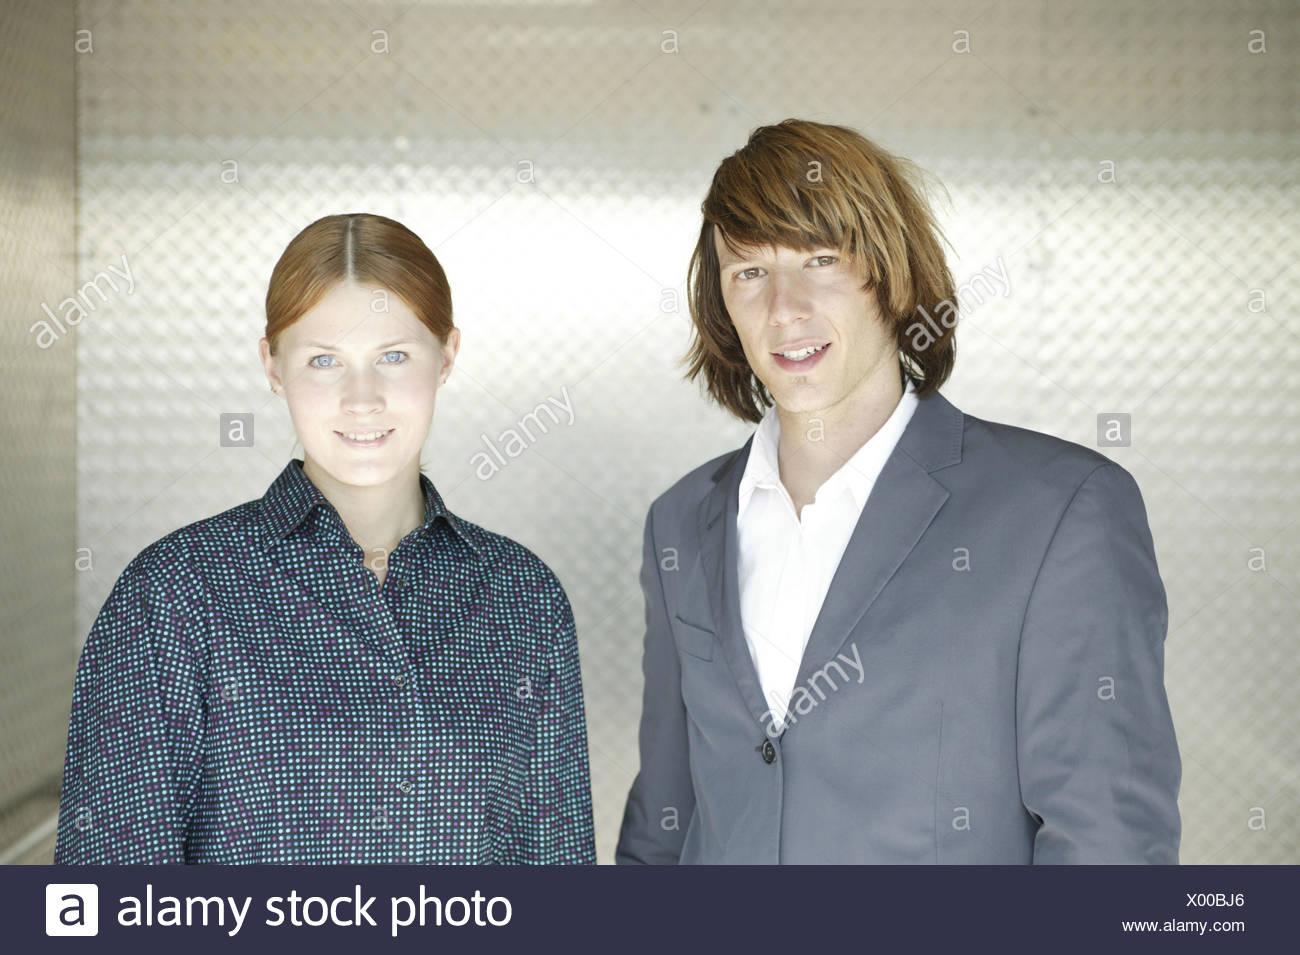 Couple, young, smile, half portrait, 15 - 20 years, woman, young, blouse, man, 20-30 years, sports jacket, suit, young persons, occupational beginners, occupational entrance, trainees, trainees, business, colleague, colleague, friendly, view camera, inside - Stock Image